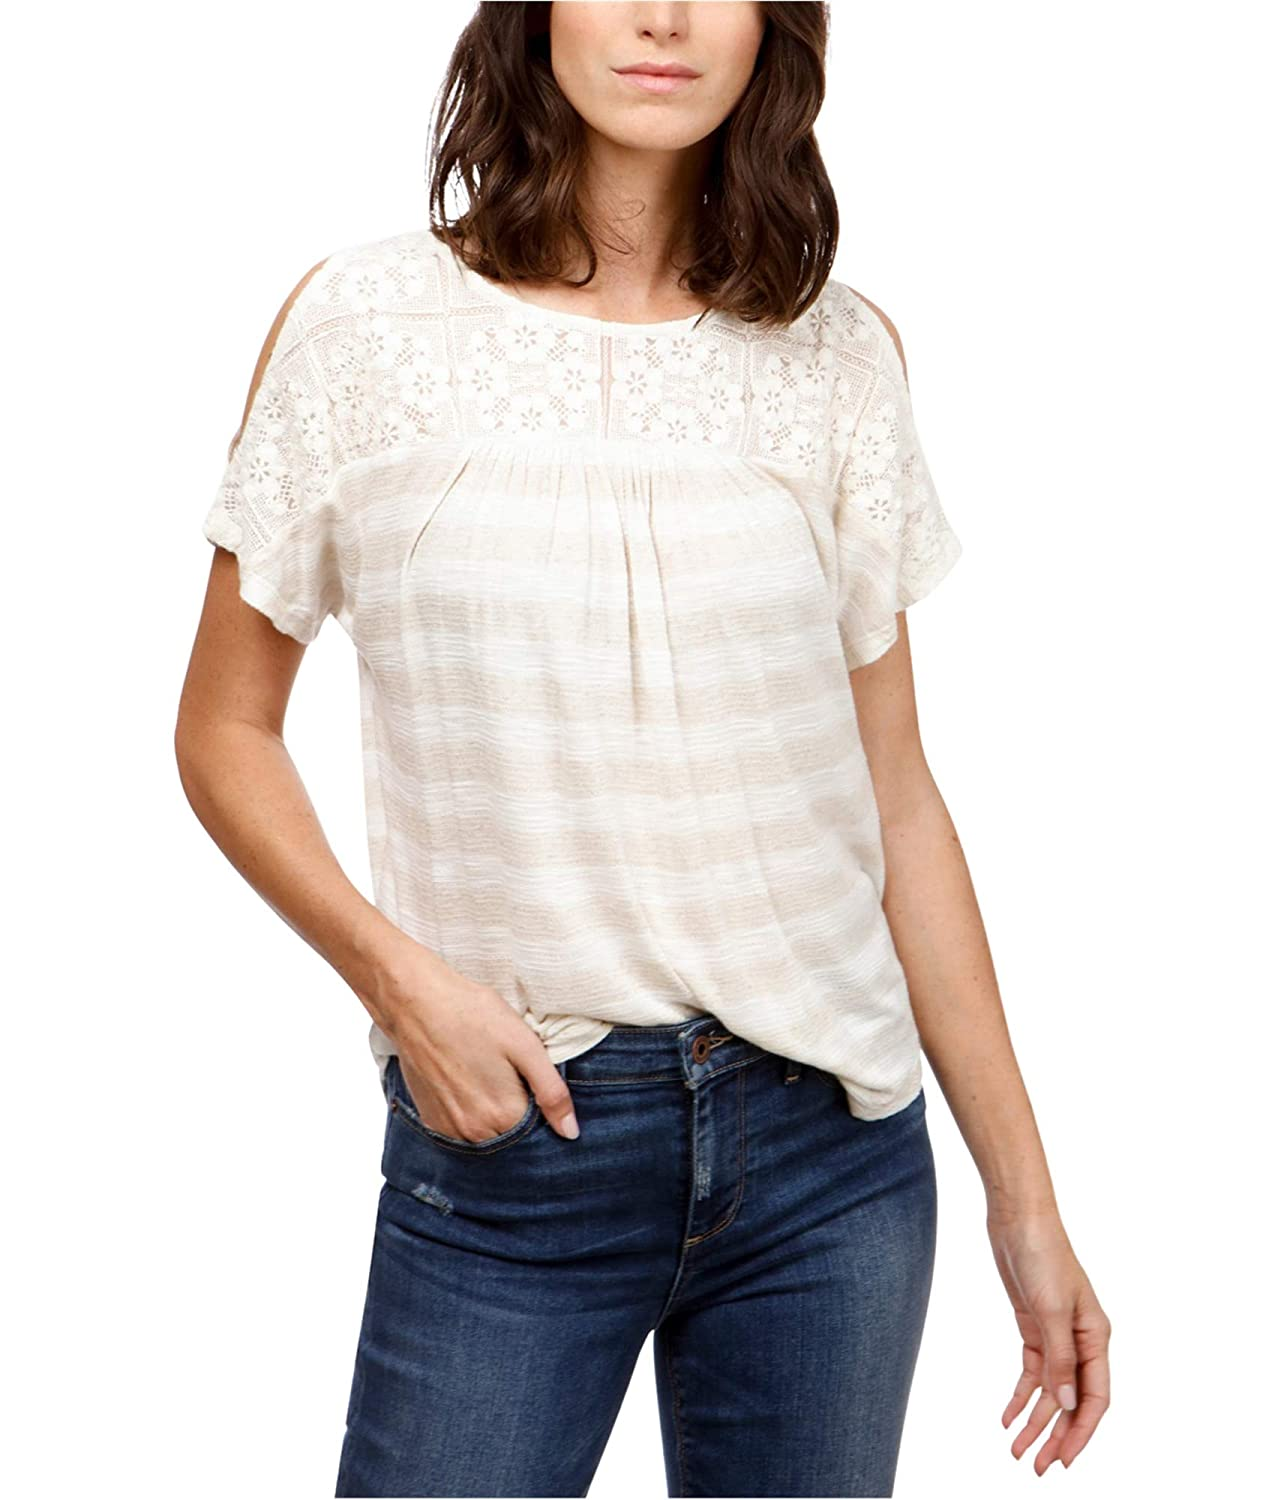 0tx Lucky Brand Womens Crocheted Basic TShirt